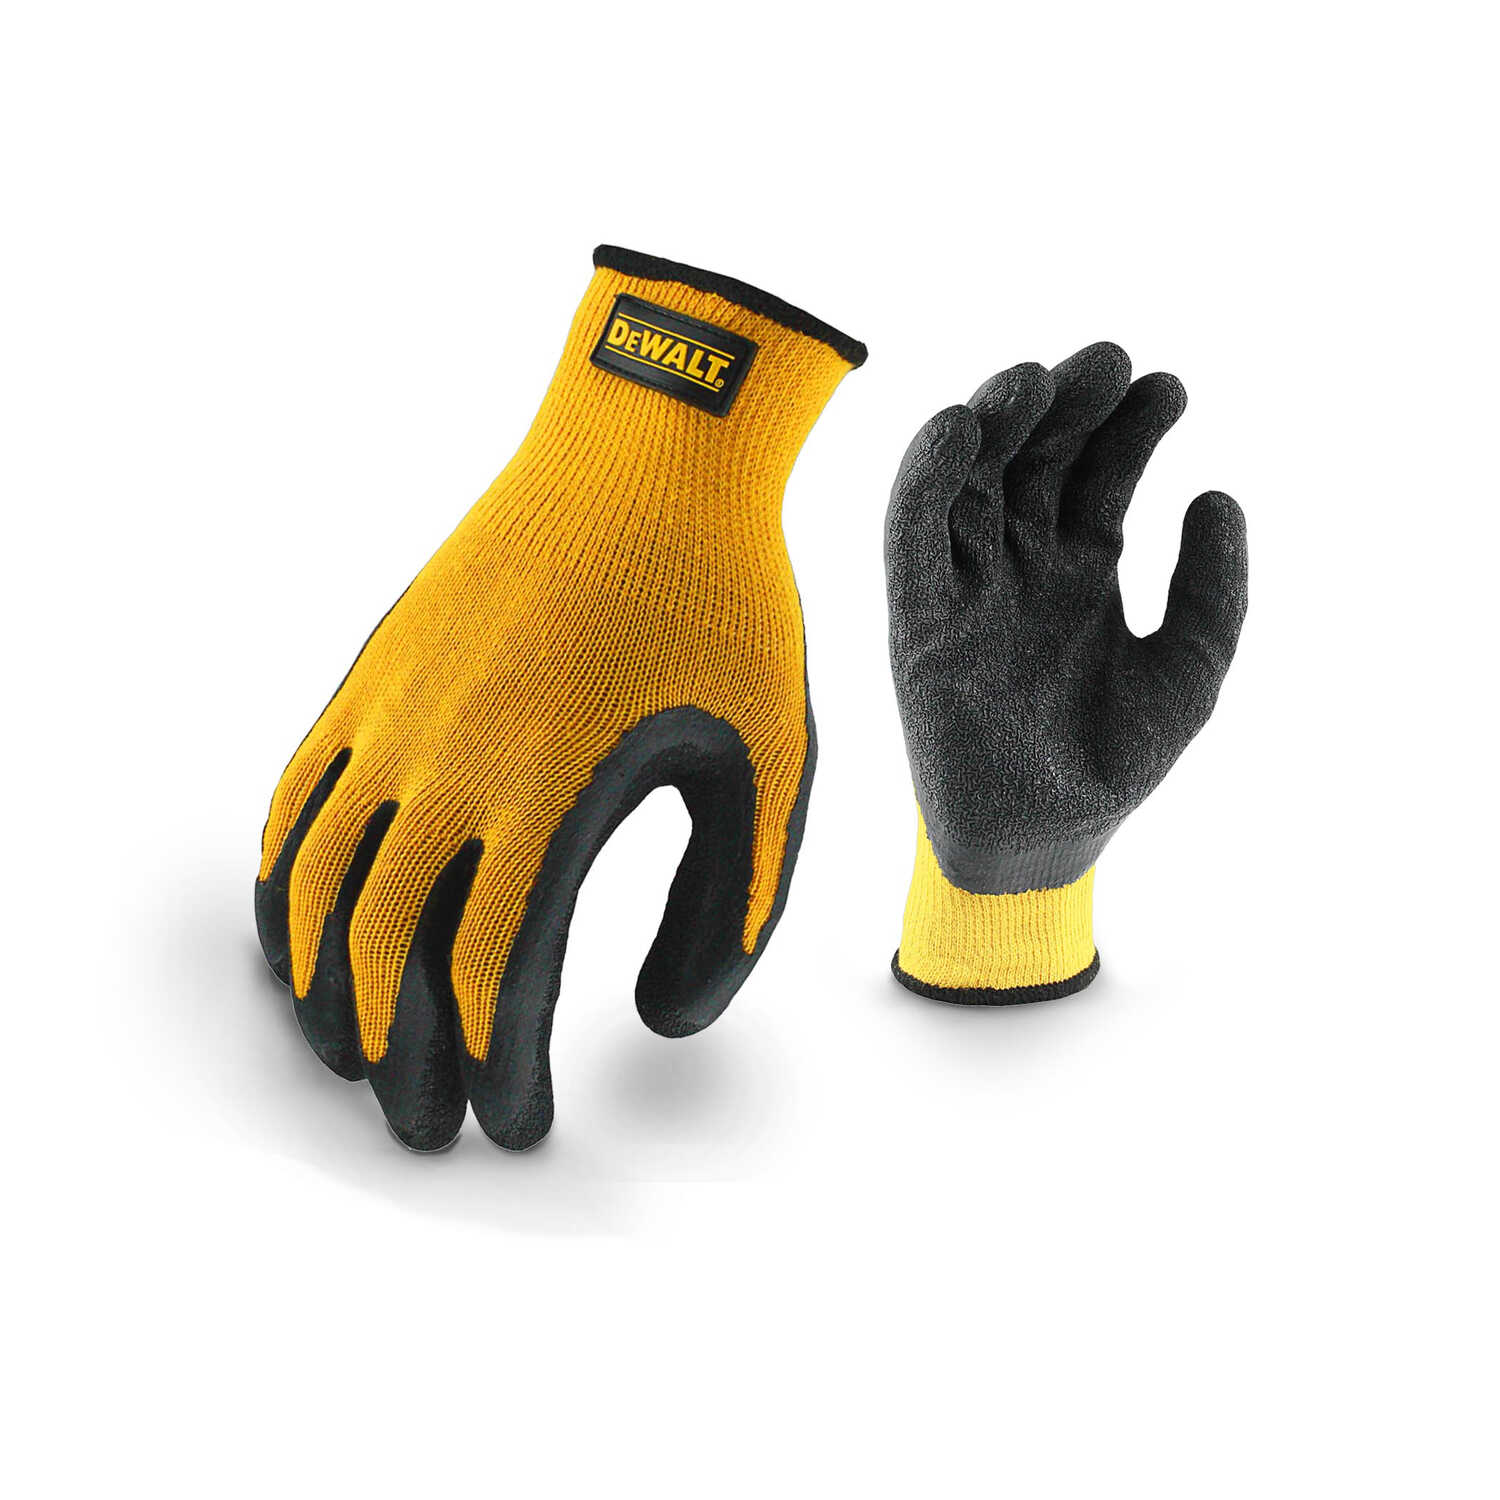 DeWalt  Radians  Universal  Rubber  Grip  Work Gloves  Yellow/Black  L